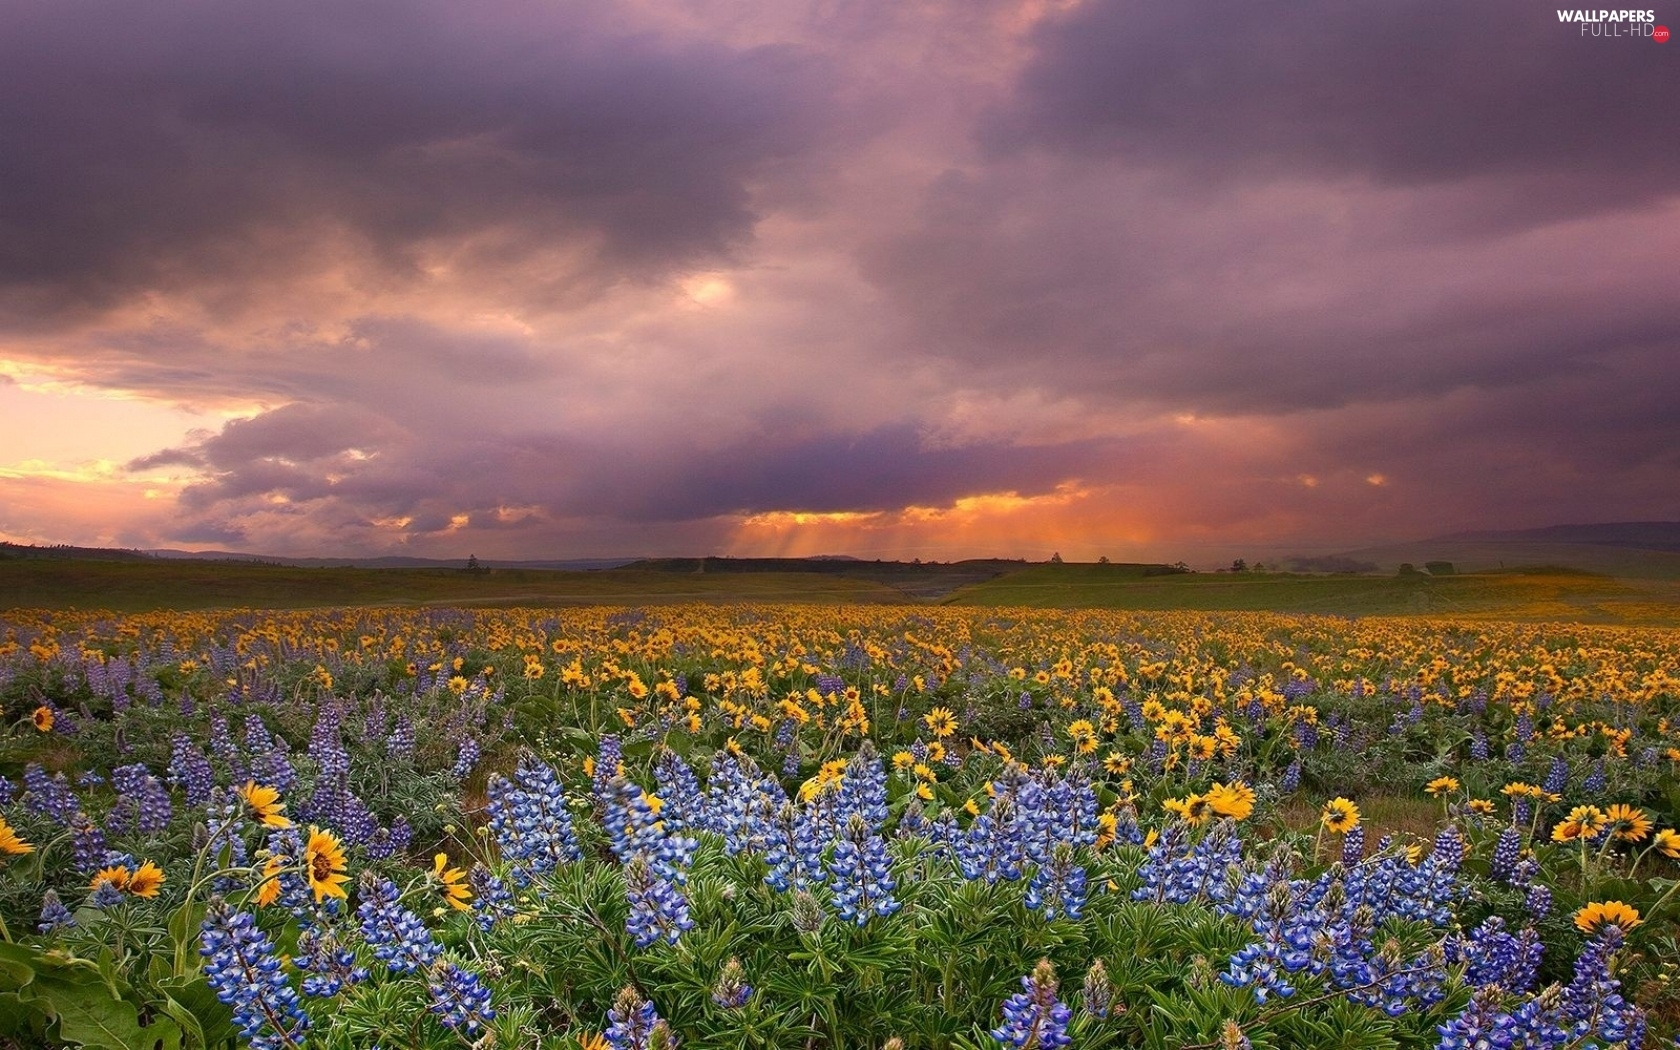 lupine, Nice sunflowers, west, sun